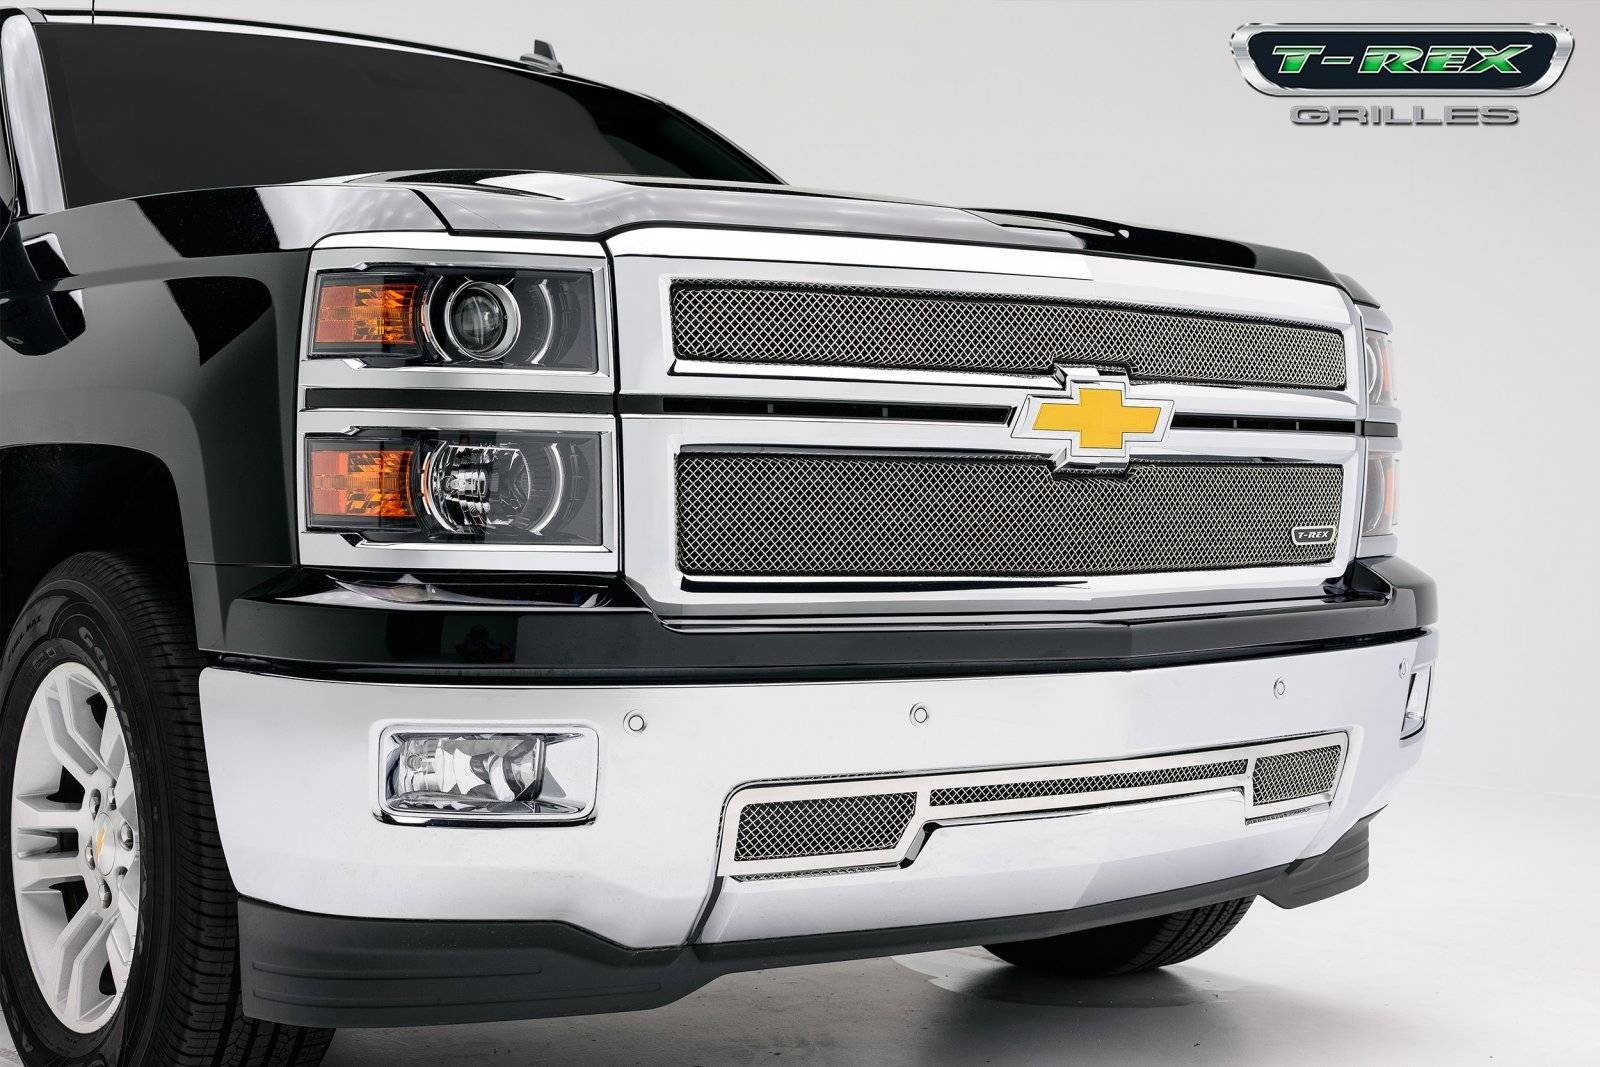 T-REX Chevrolet Silverado Z71 Sport Series Formed Mesh Grille - Stainless Steel - Triple Chrome Plated - 2 Pc - Pt # 44120